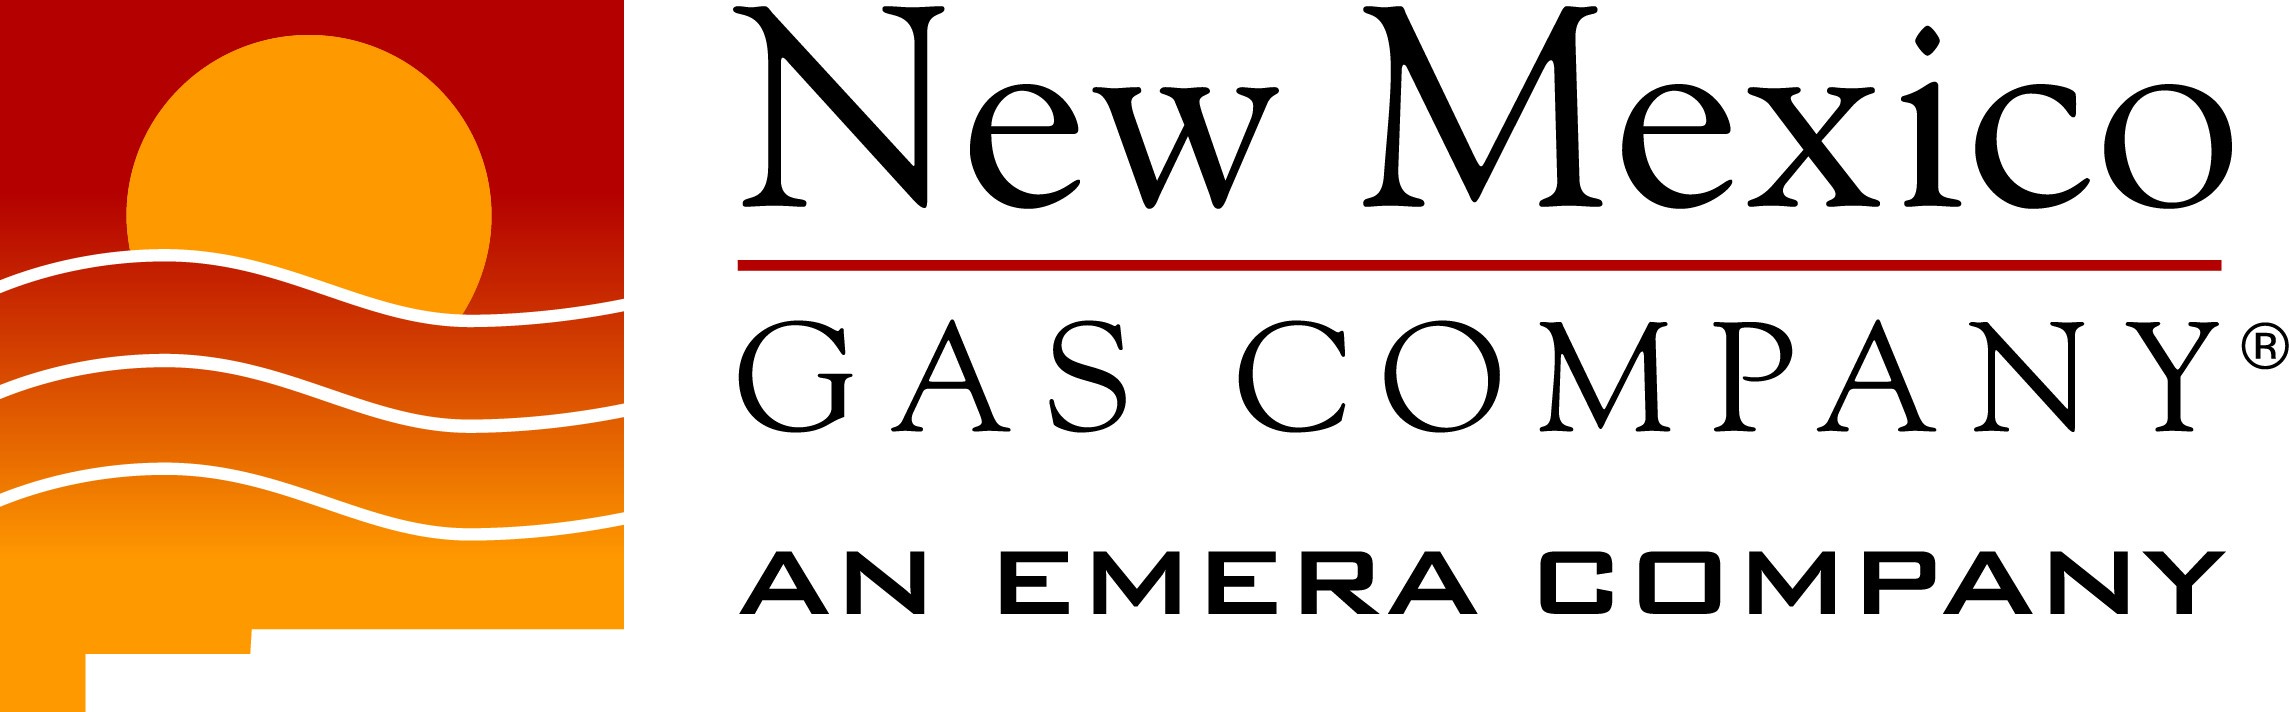 nm-gas-company-logo